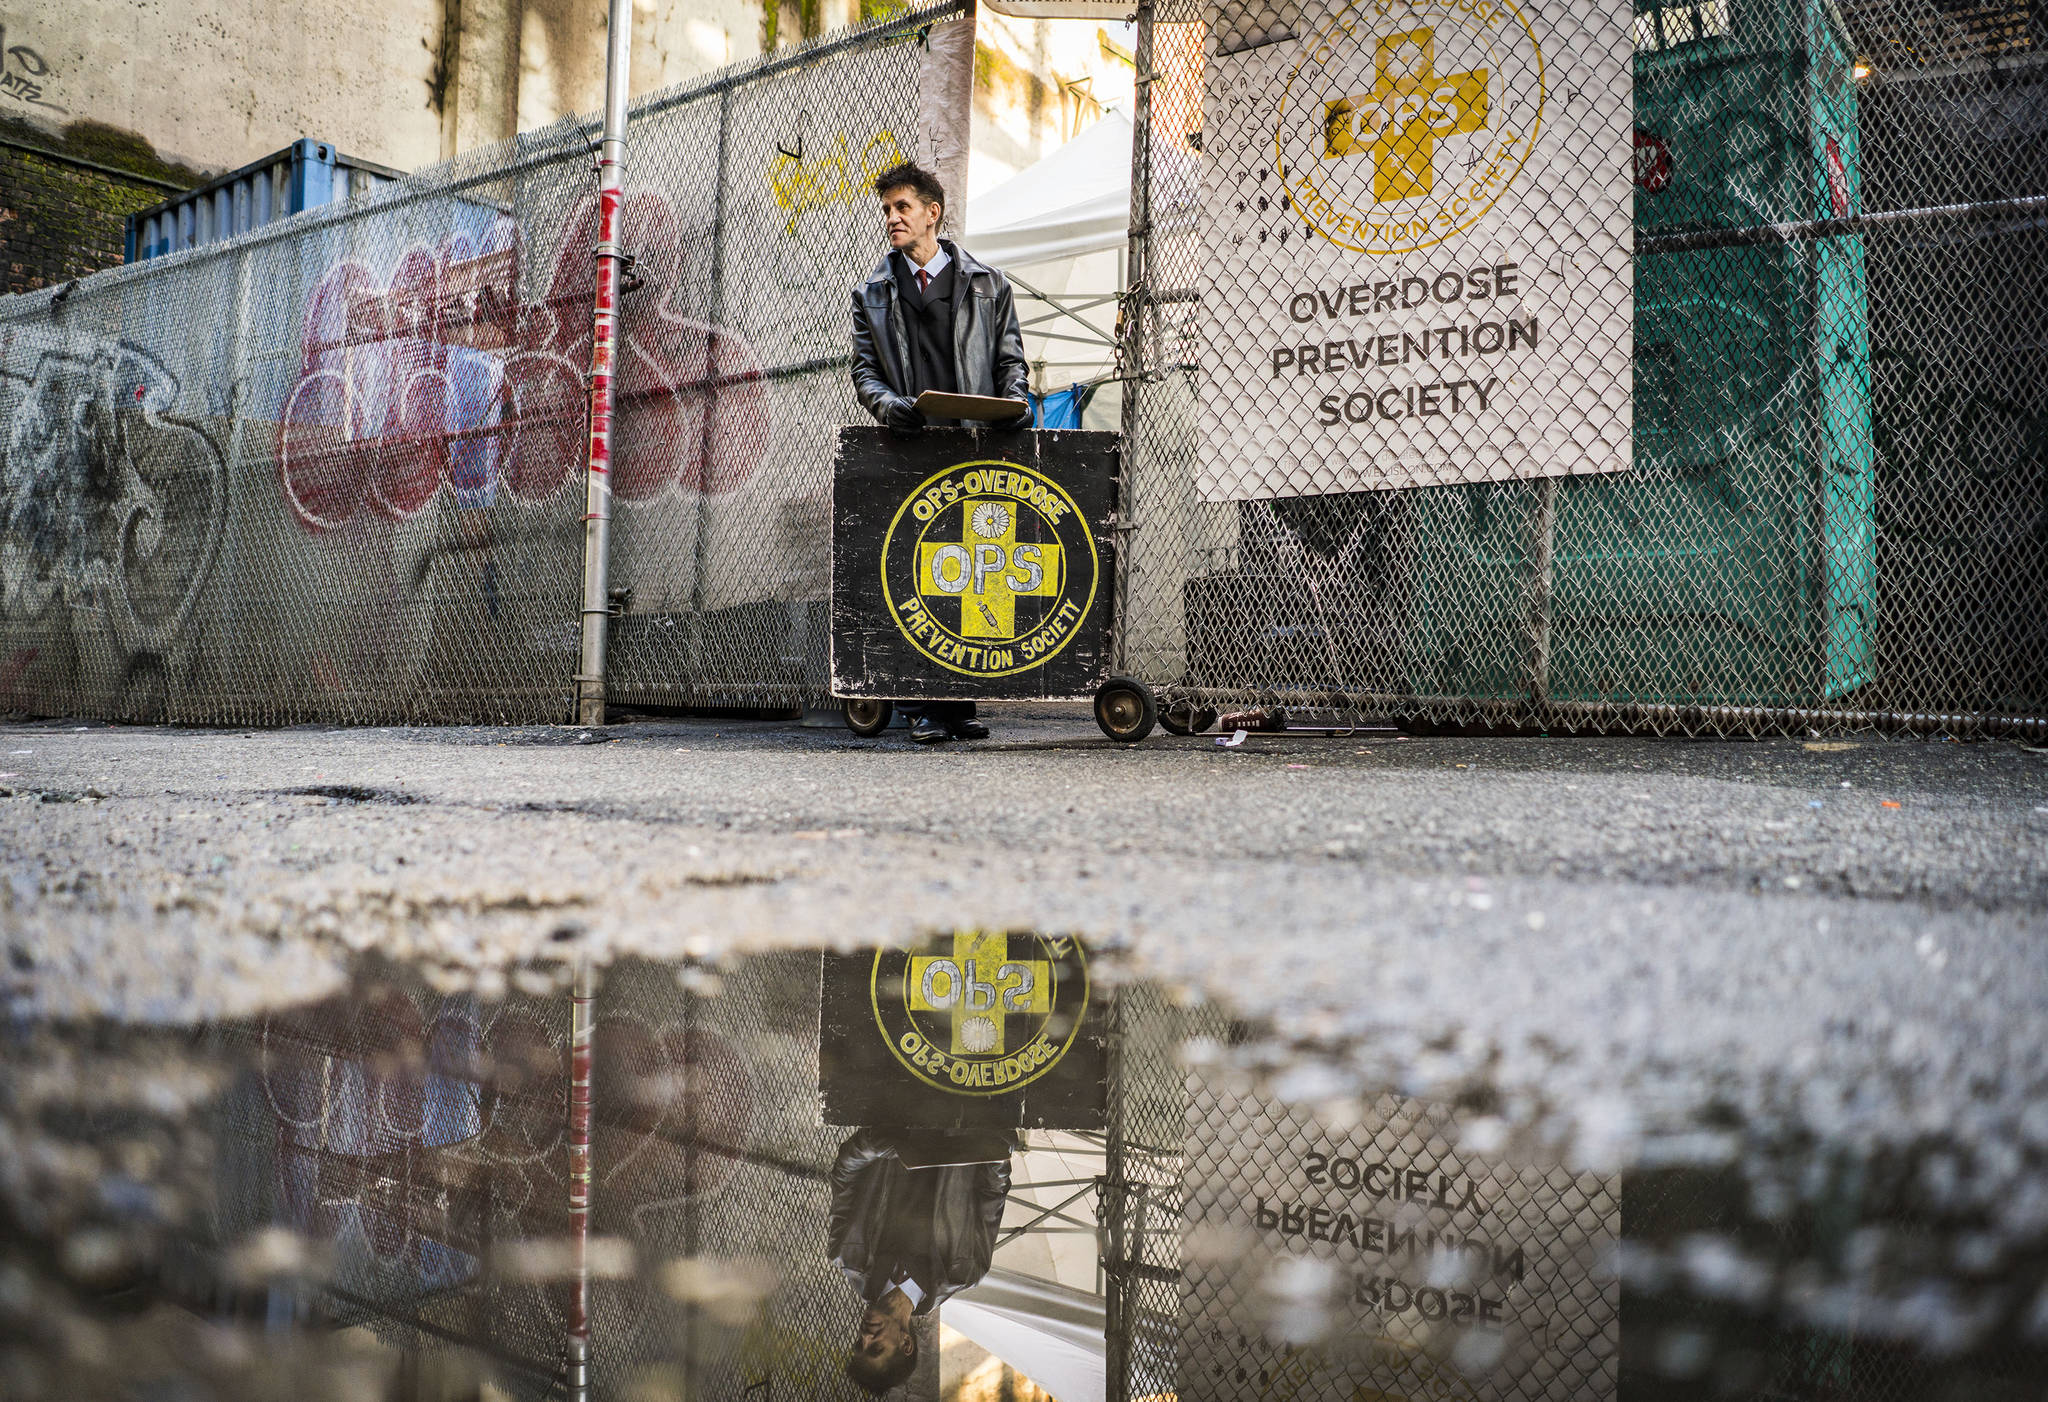 The Overdose Prevention Society runs one of Vancouver's safe-injection sites, an operation that started as a pop-up and now includes a permanent facility. Frederick Williams checks off users as they enter. Washington Post photo by John Lehmann